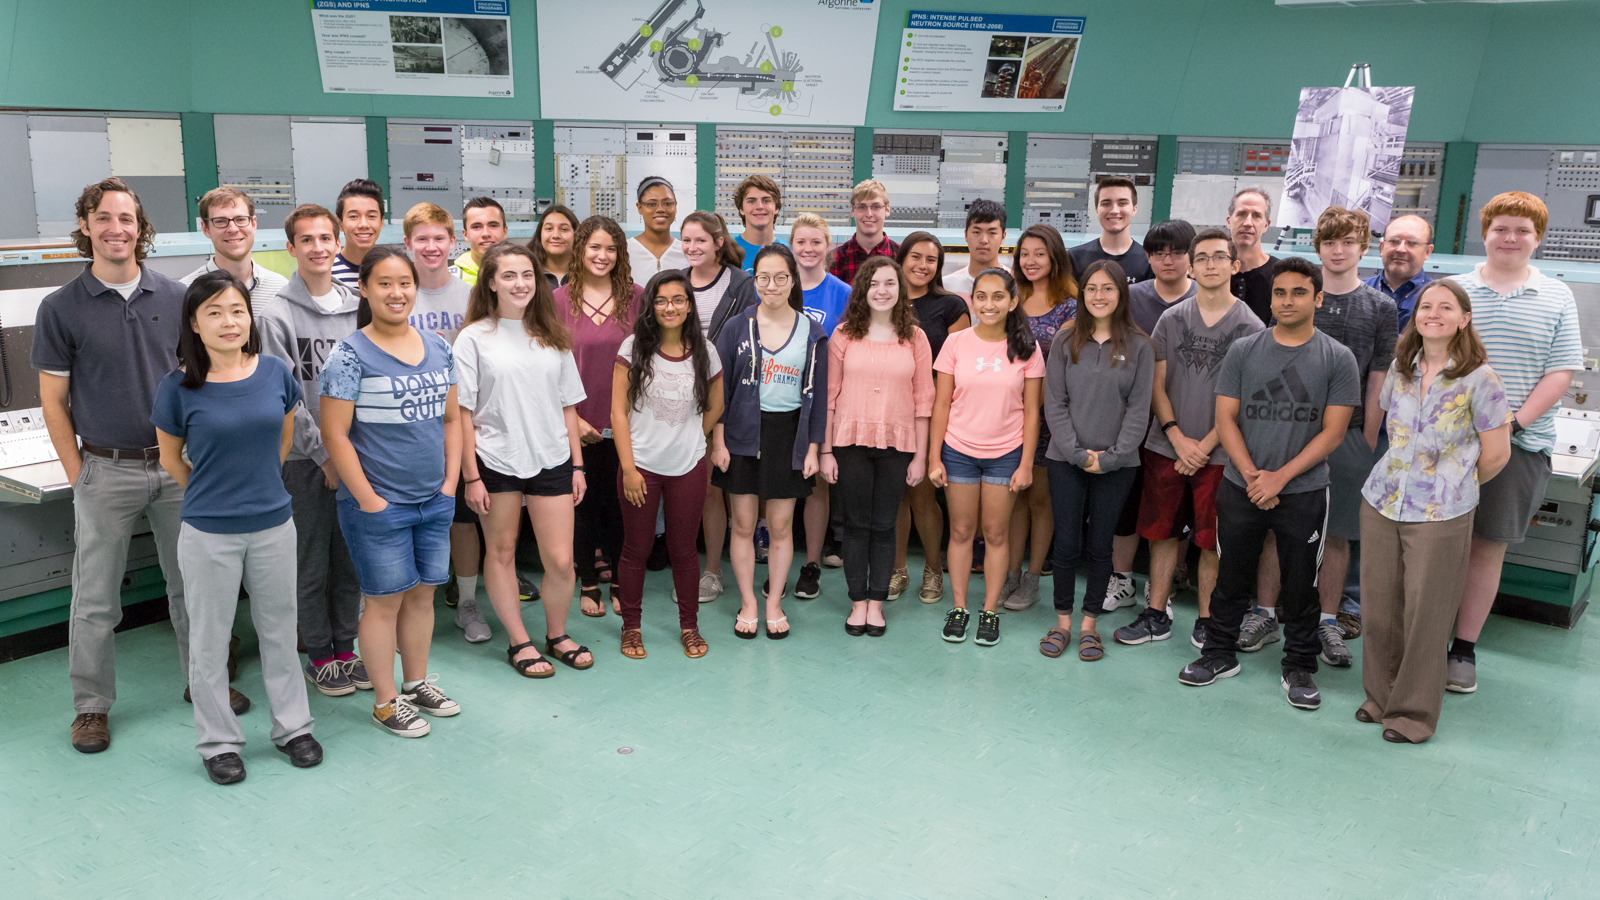 Students break for a group photo with teachers and organizers during this summer's coding camp in Argonne's historic 1960's control room.